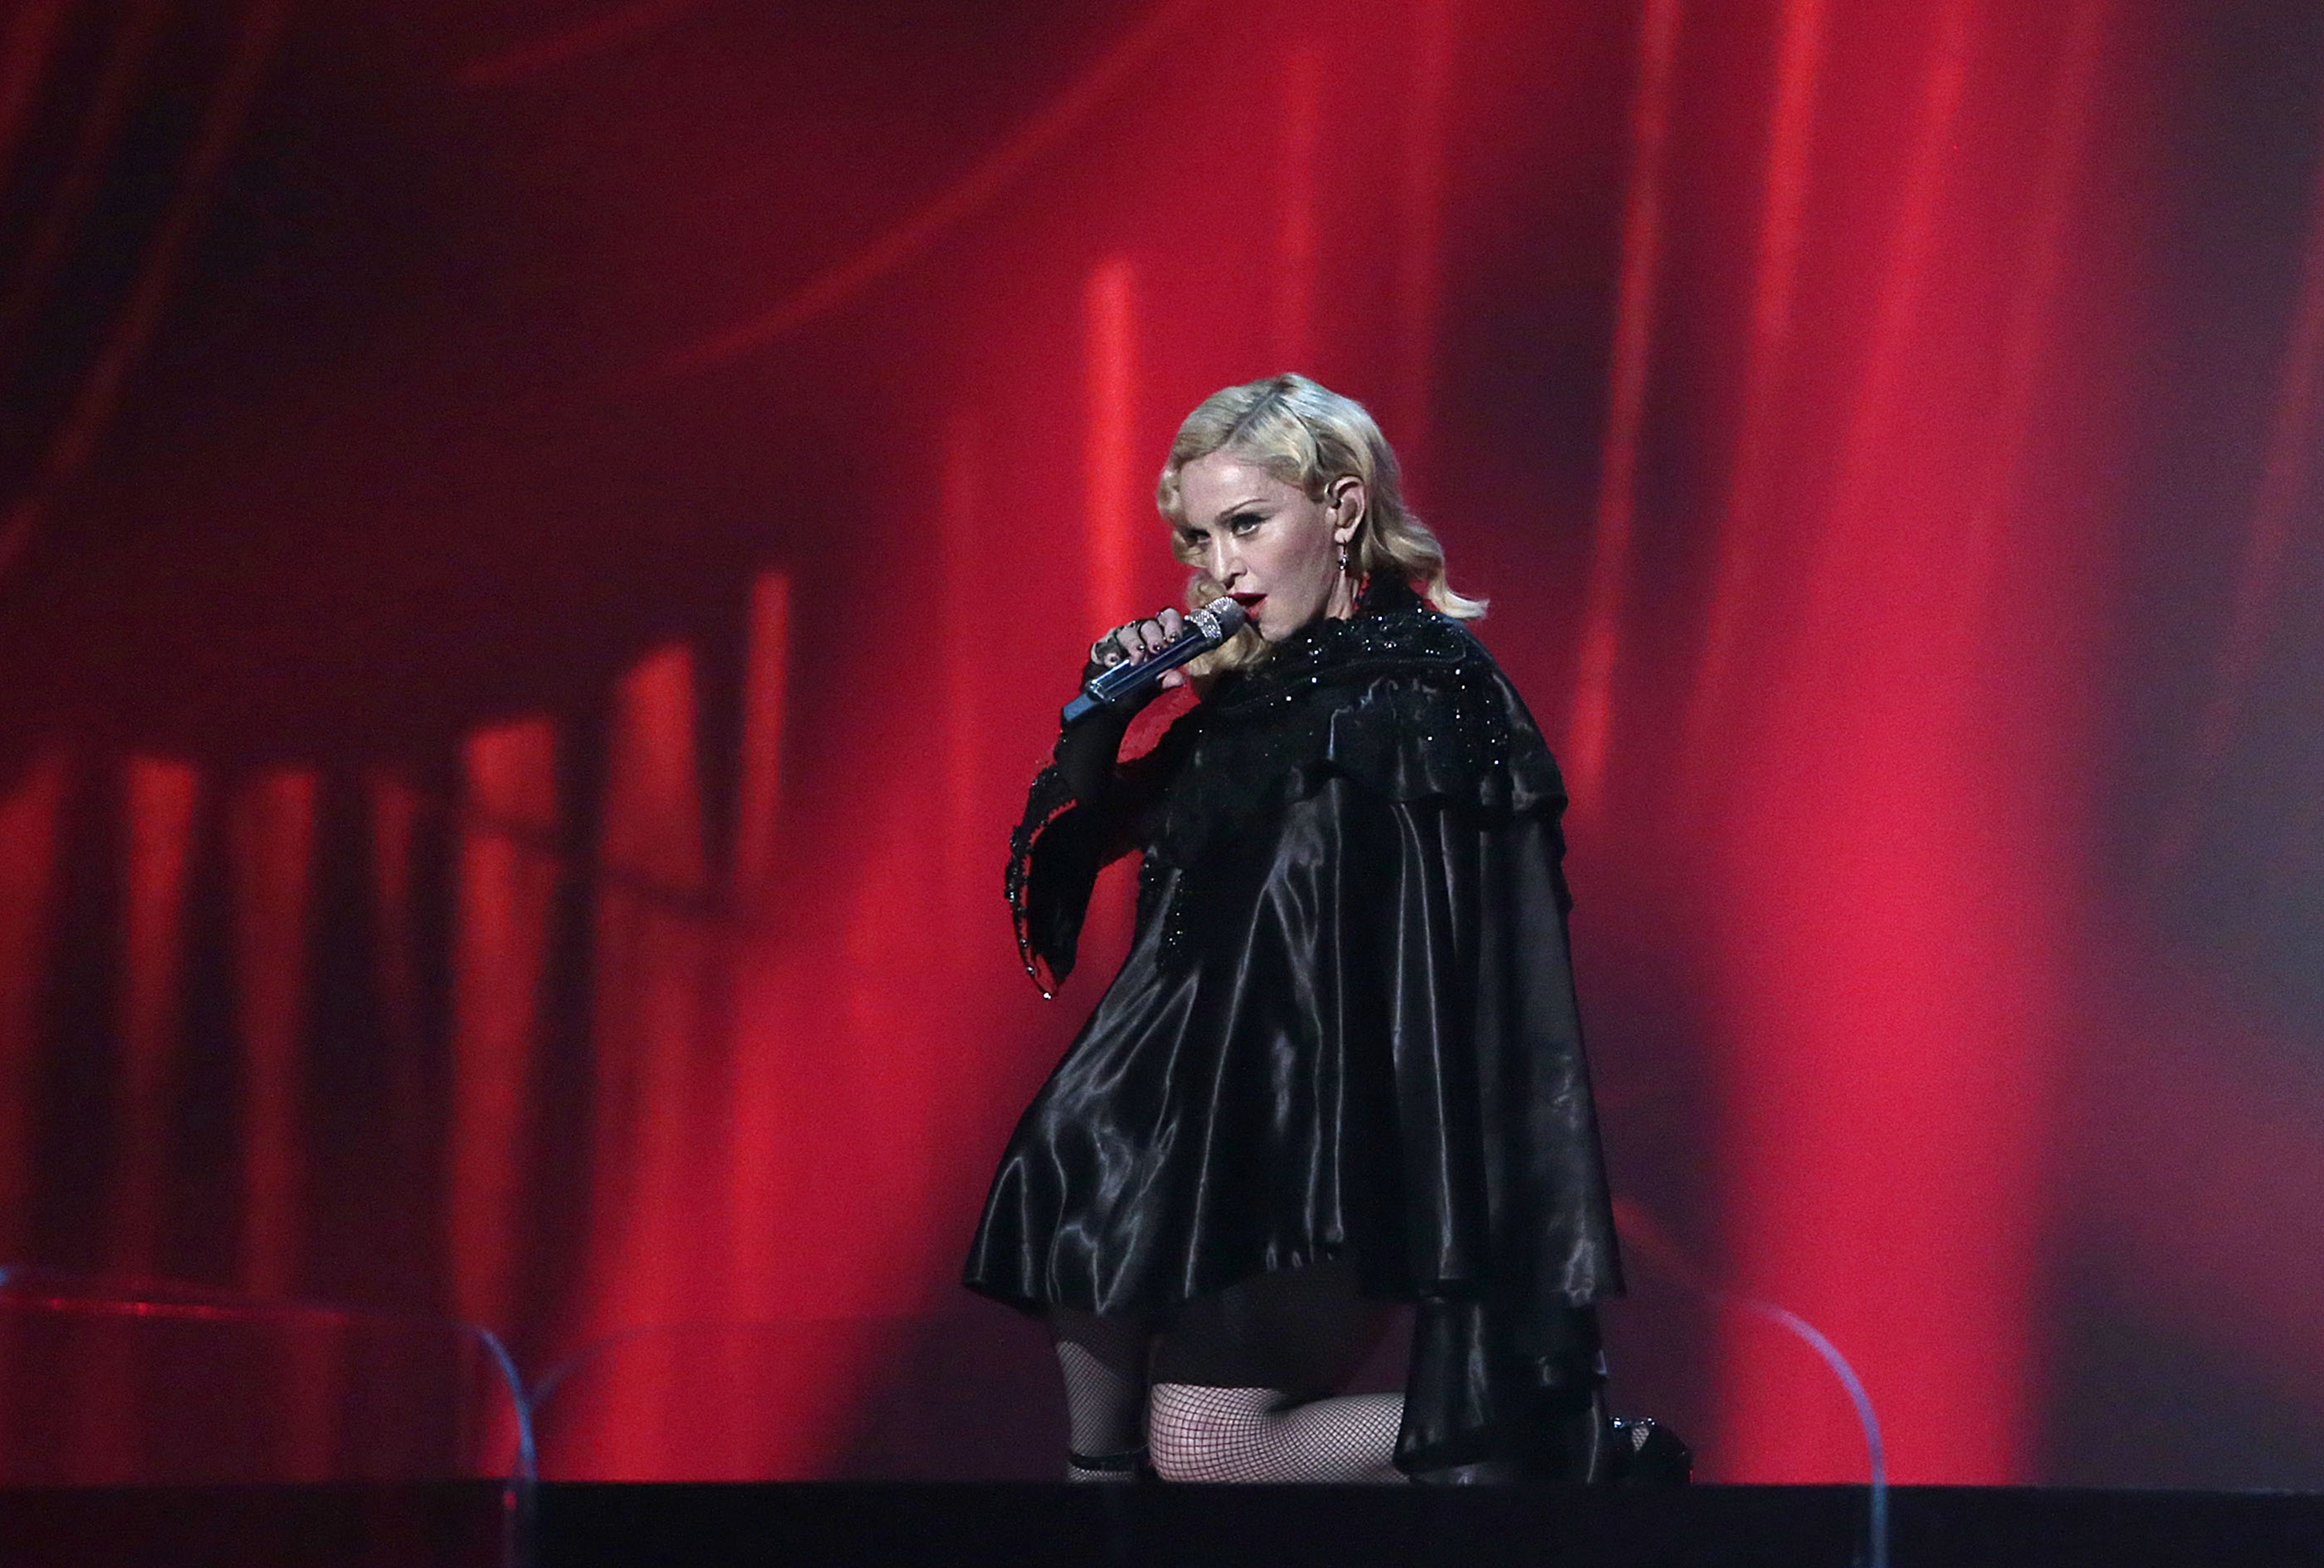 Madonna has announced dates for her upcoming tour to promote her 'Rebel Heart' album.